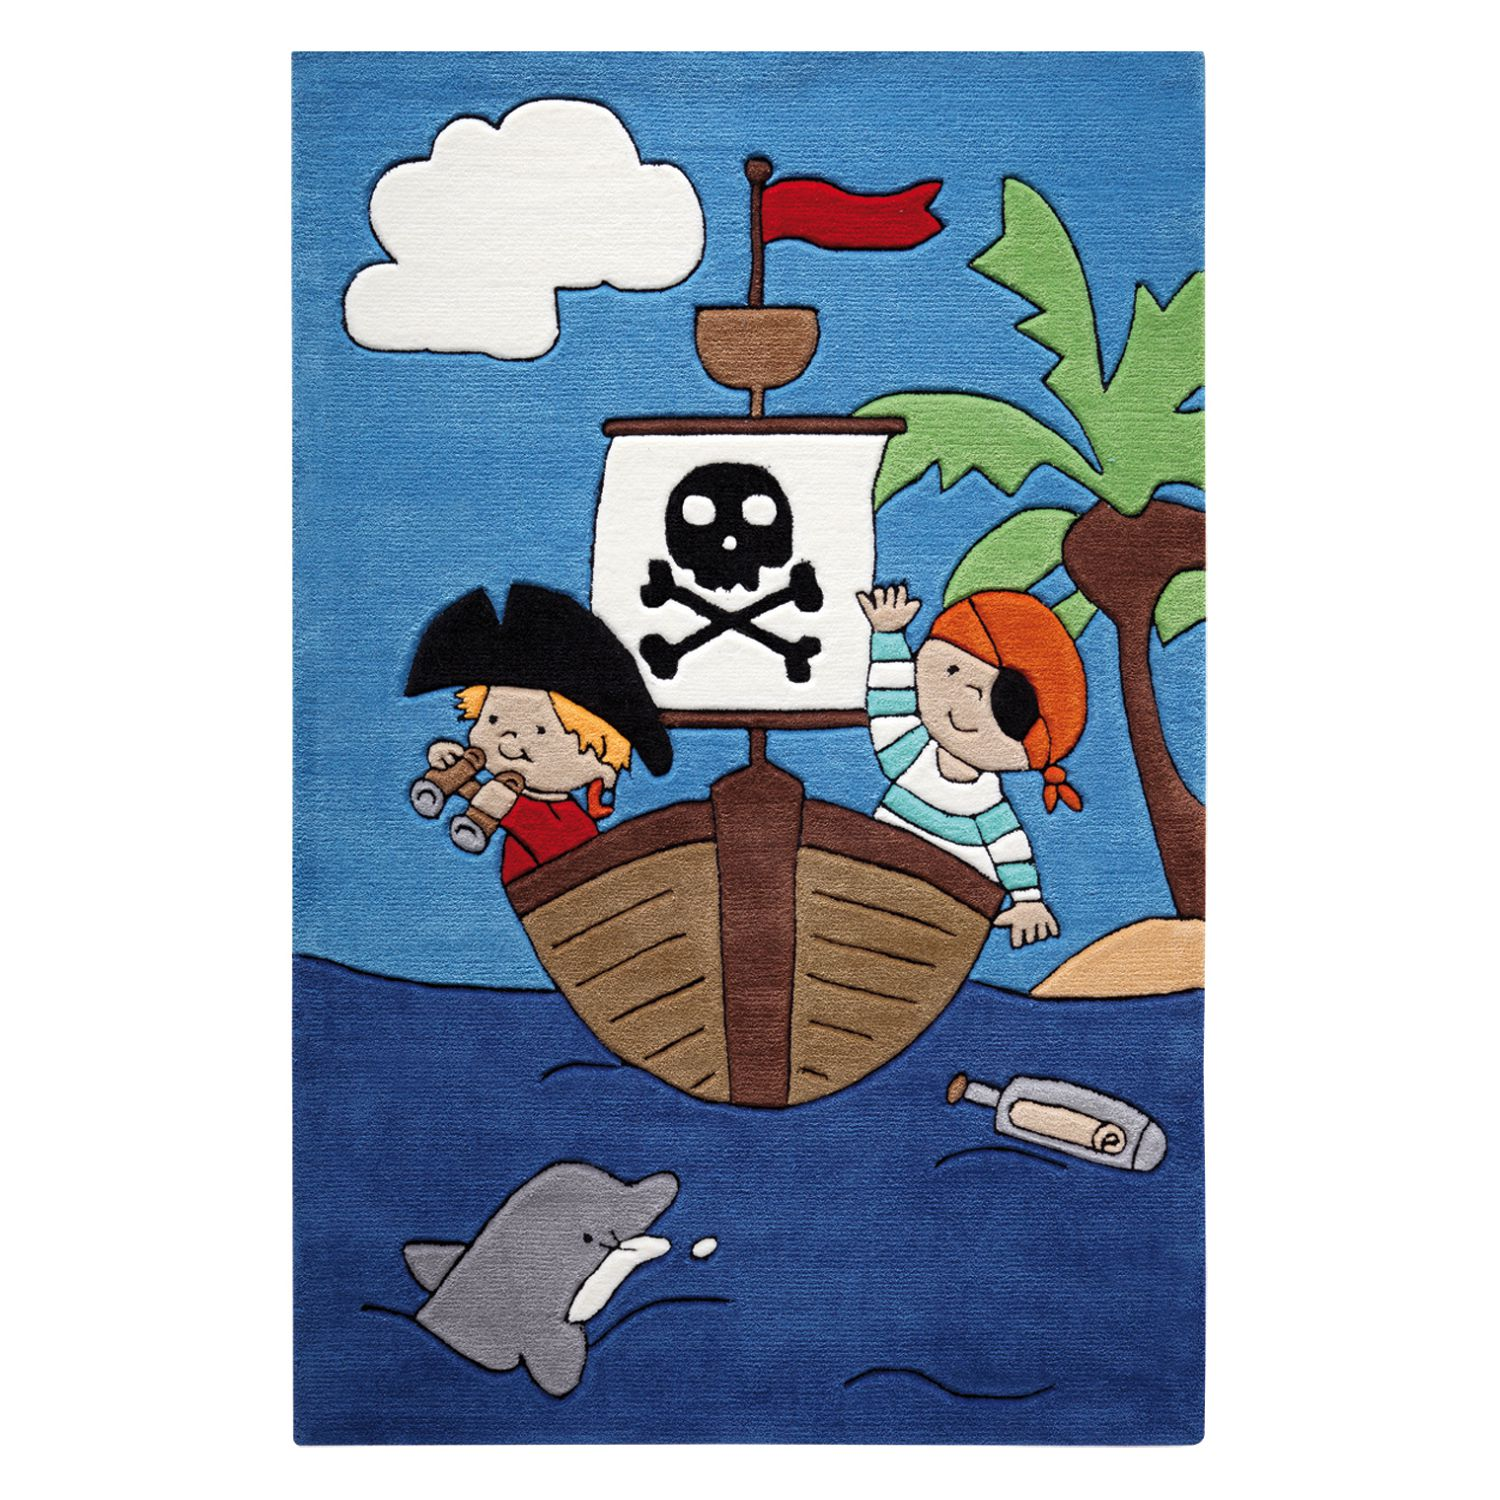 home24 Kinderteppich Pirate Kids | Kinderzimmer > Textilien für Kinder > Kinderteppiche | Blau | Textil | SMART KIDS